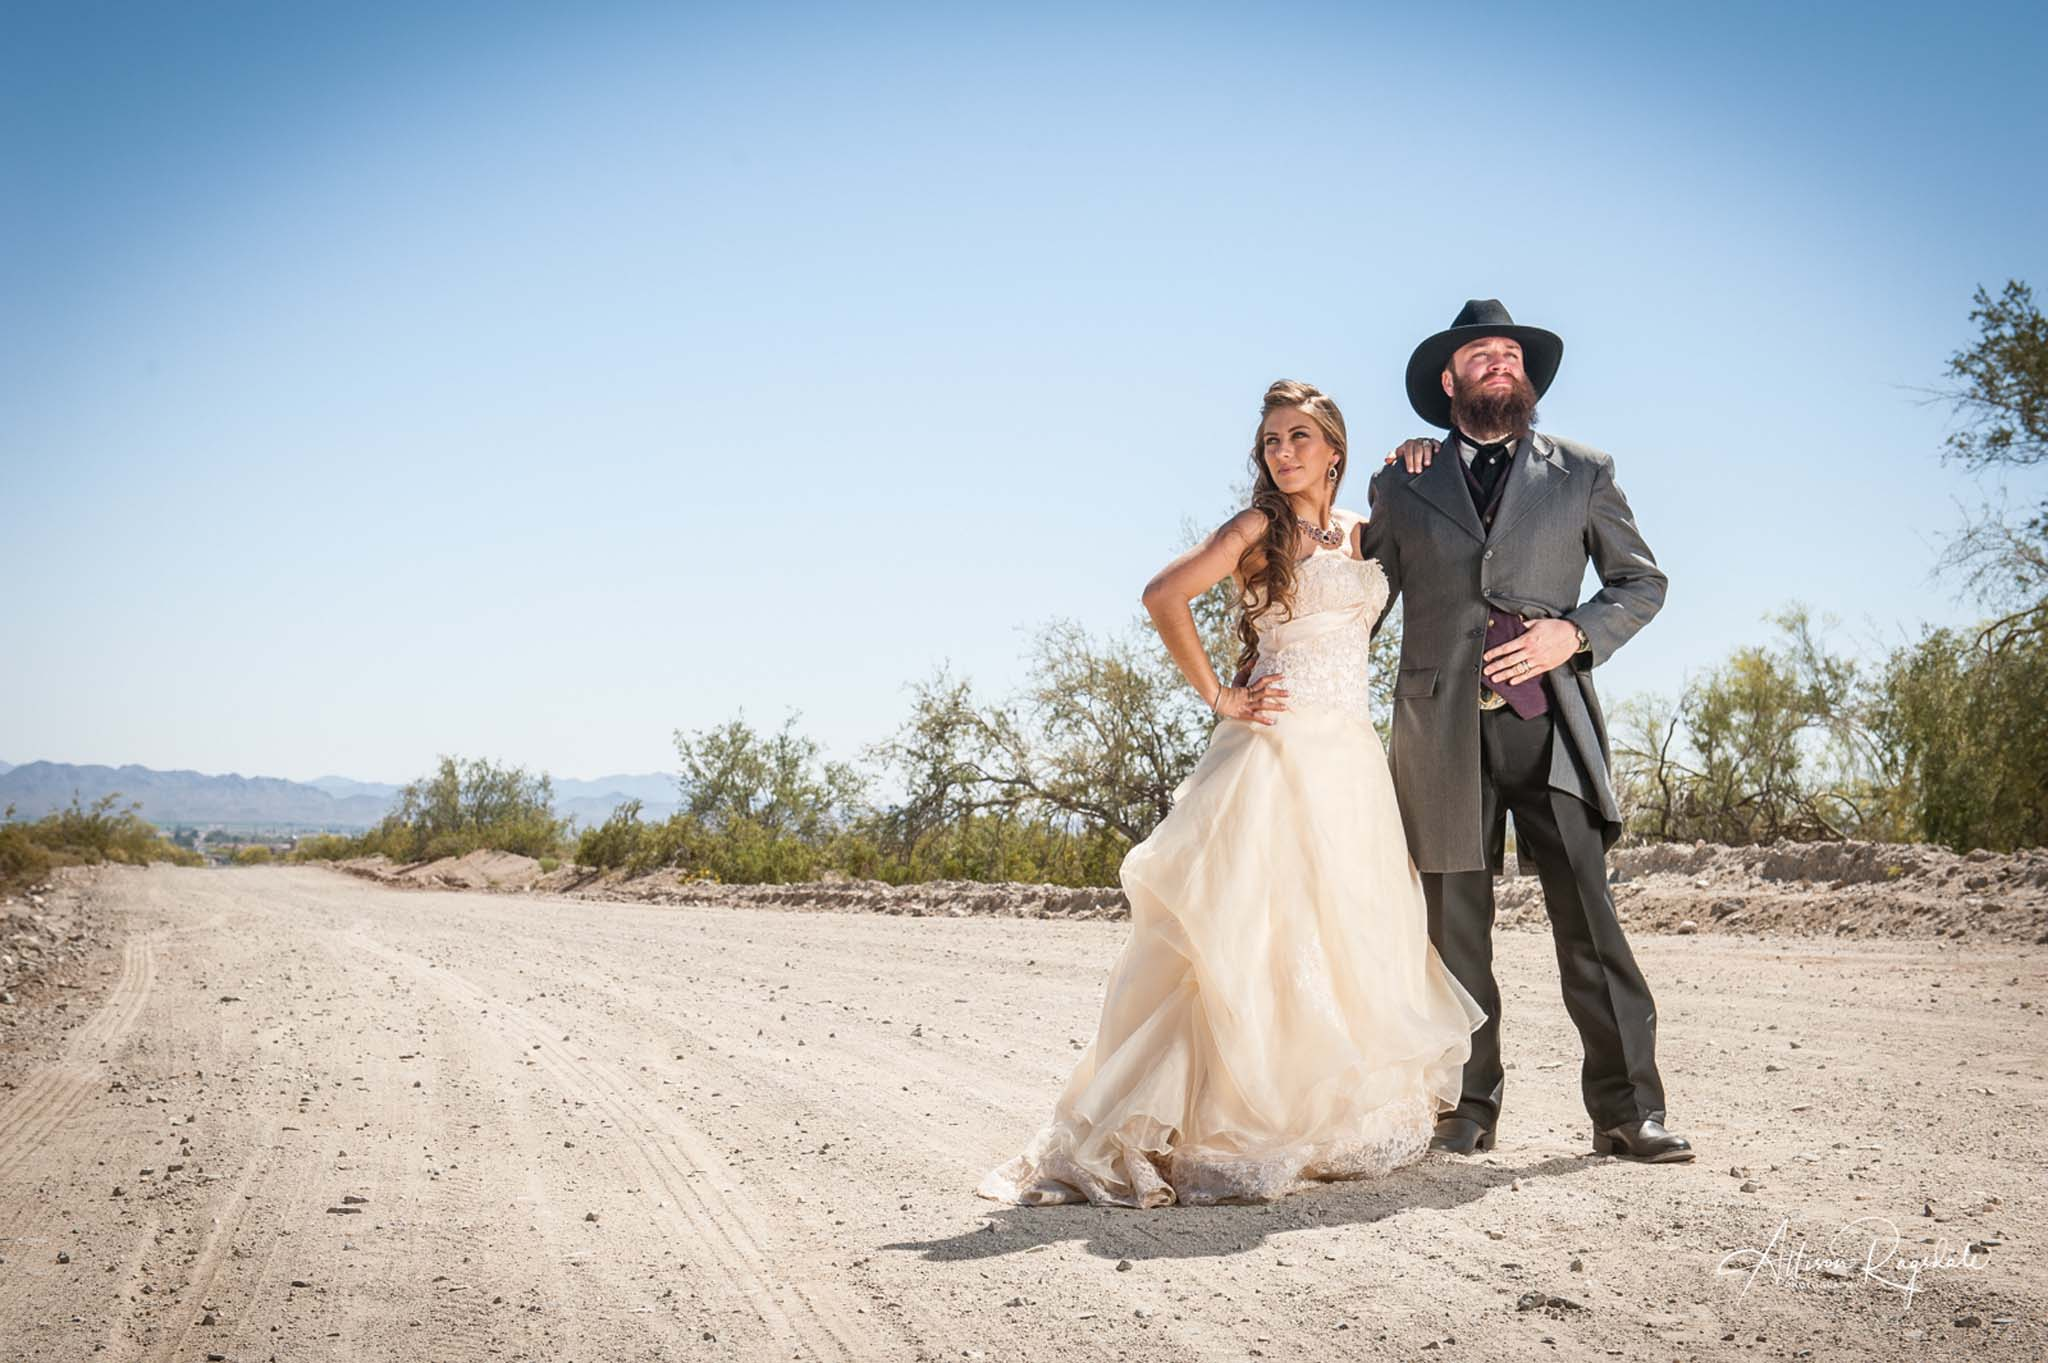 newlyweds posing on a dirt road